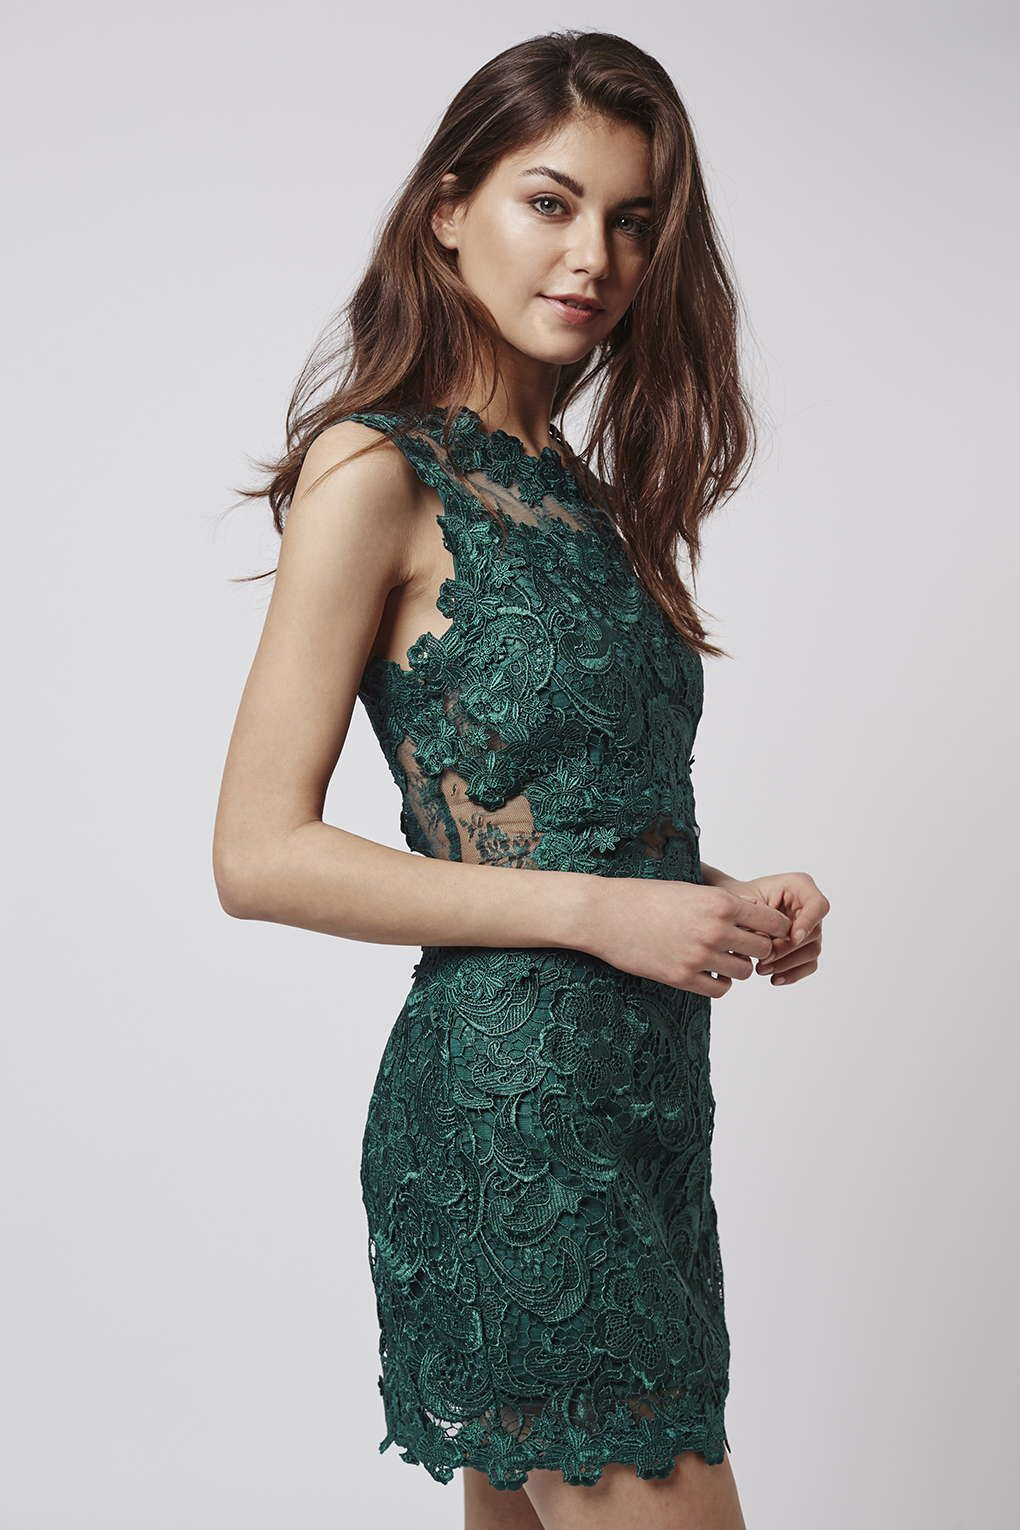 Premium Lace Bodycon Dress Body Con Topshop And Bodies